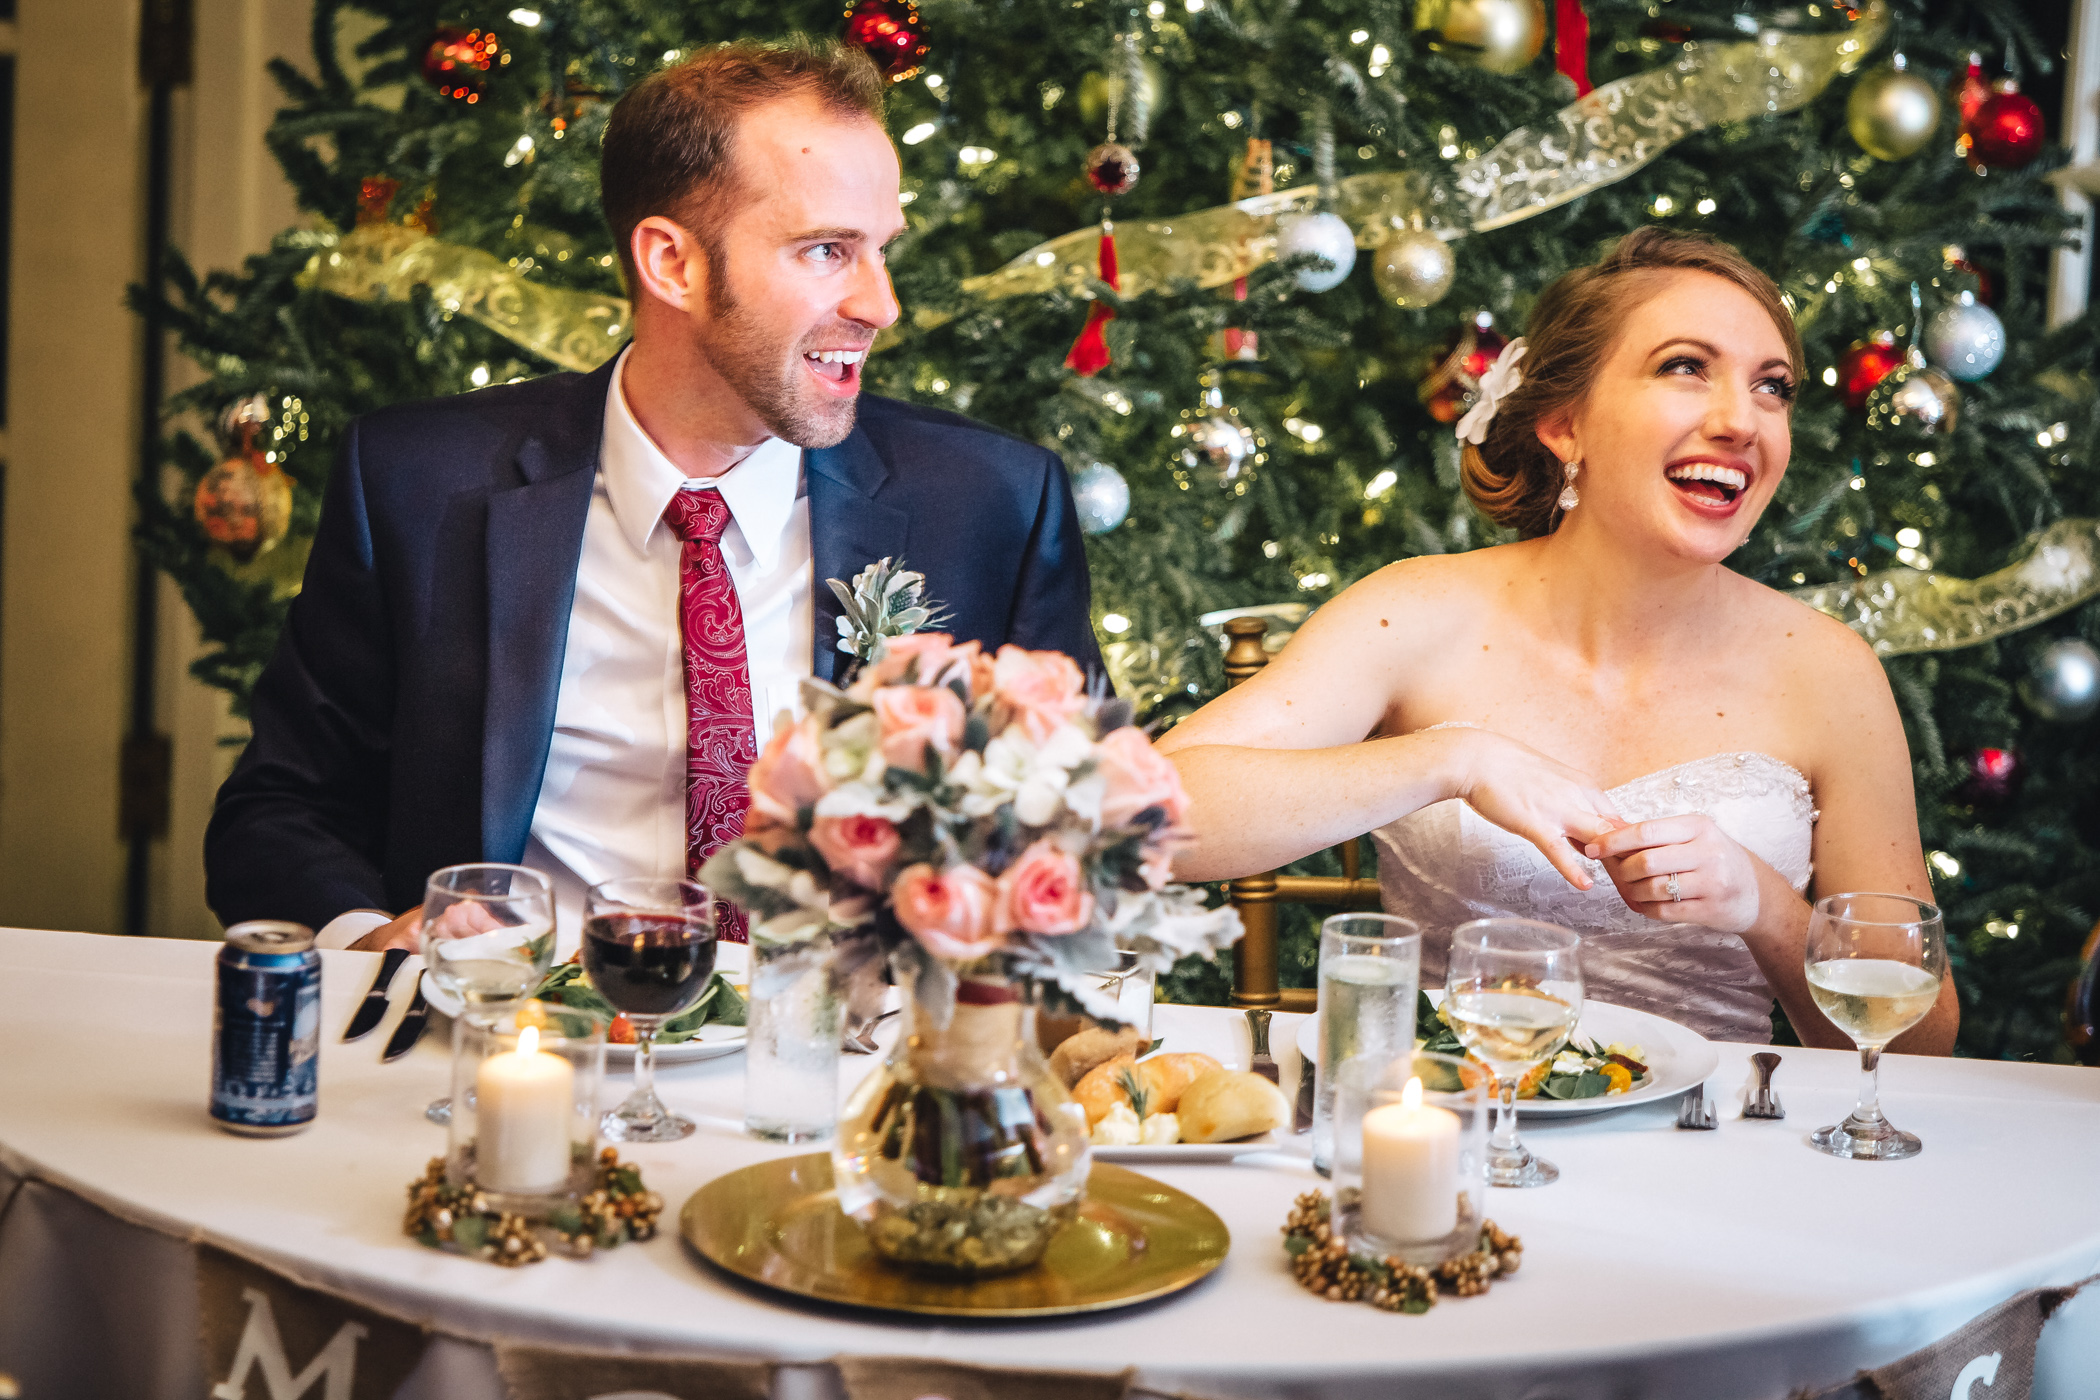 Downtown Orlando Wedding at Lake Lucerne Christmas Theme Red Dress Navy Suits 173.jpg